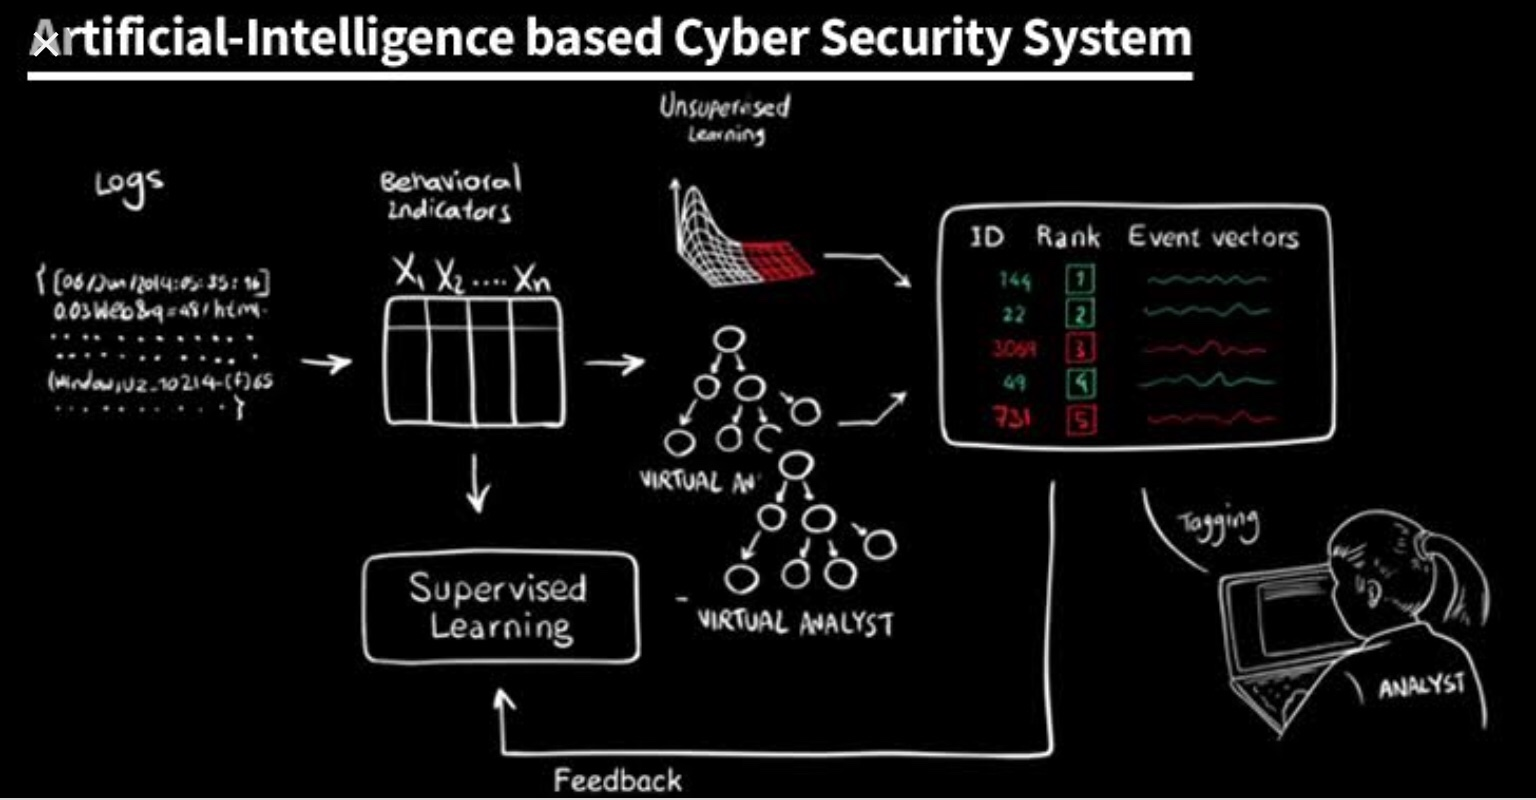 #Cybersecurity & #AI news events that rocked 2018.